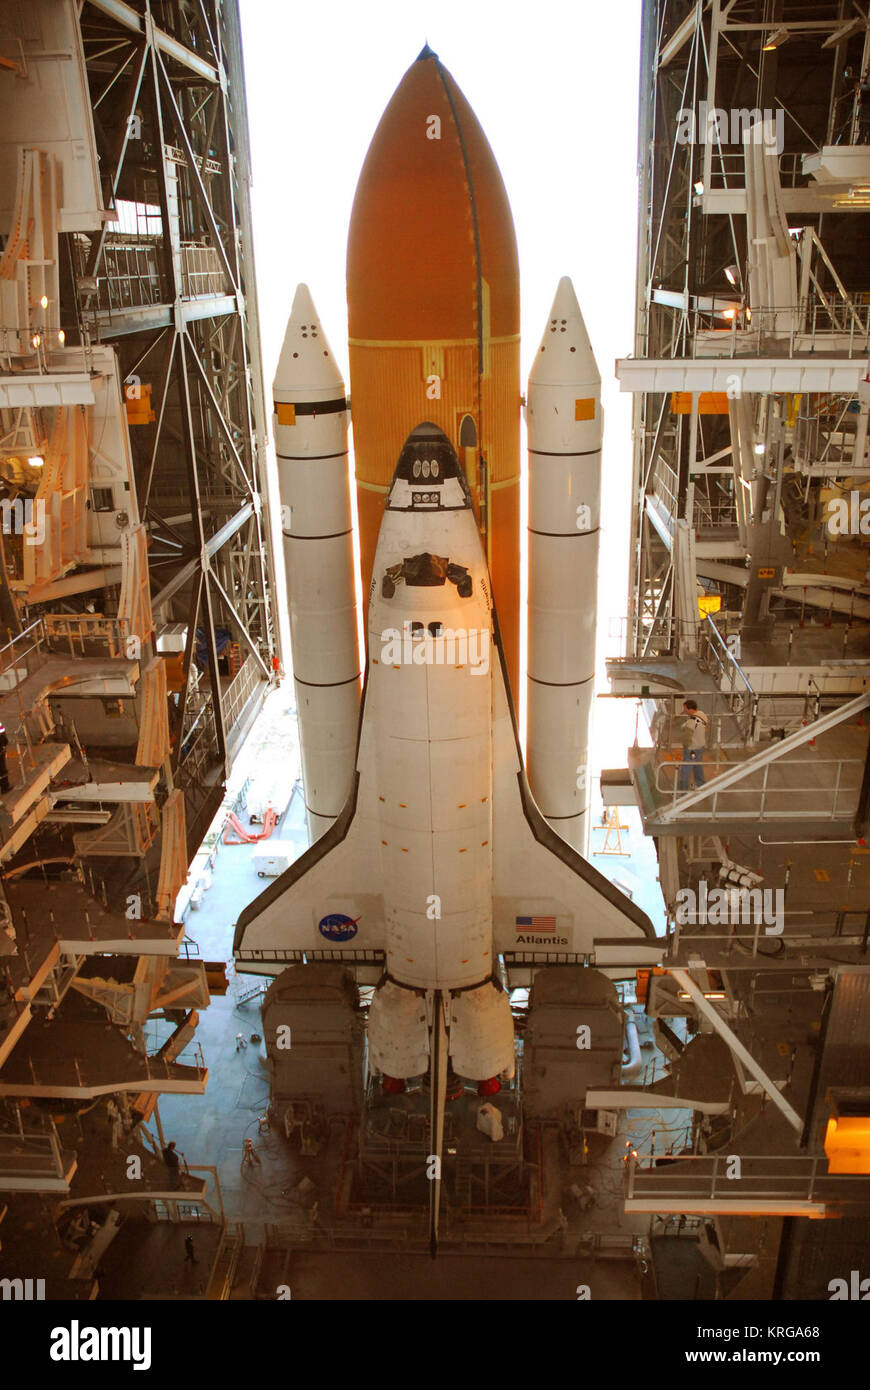 STS-117 rollback6 - Stock Image